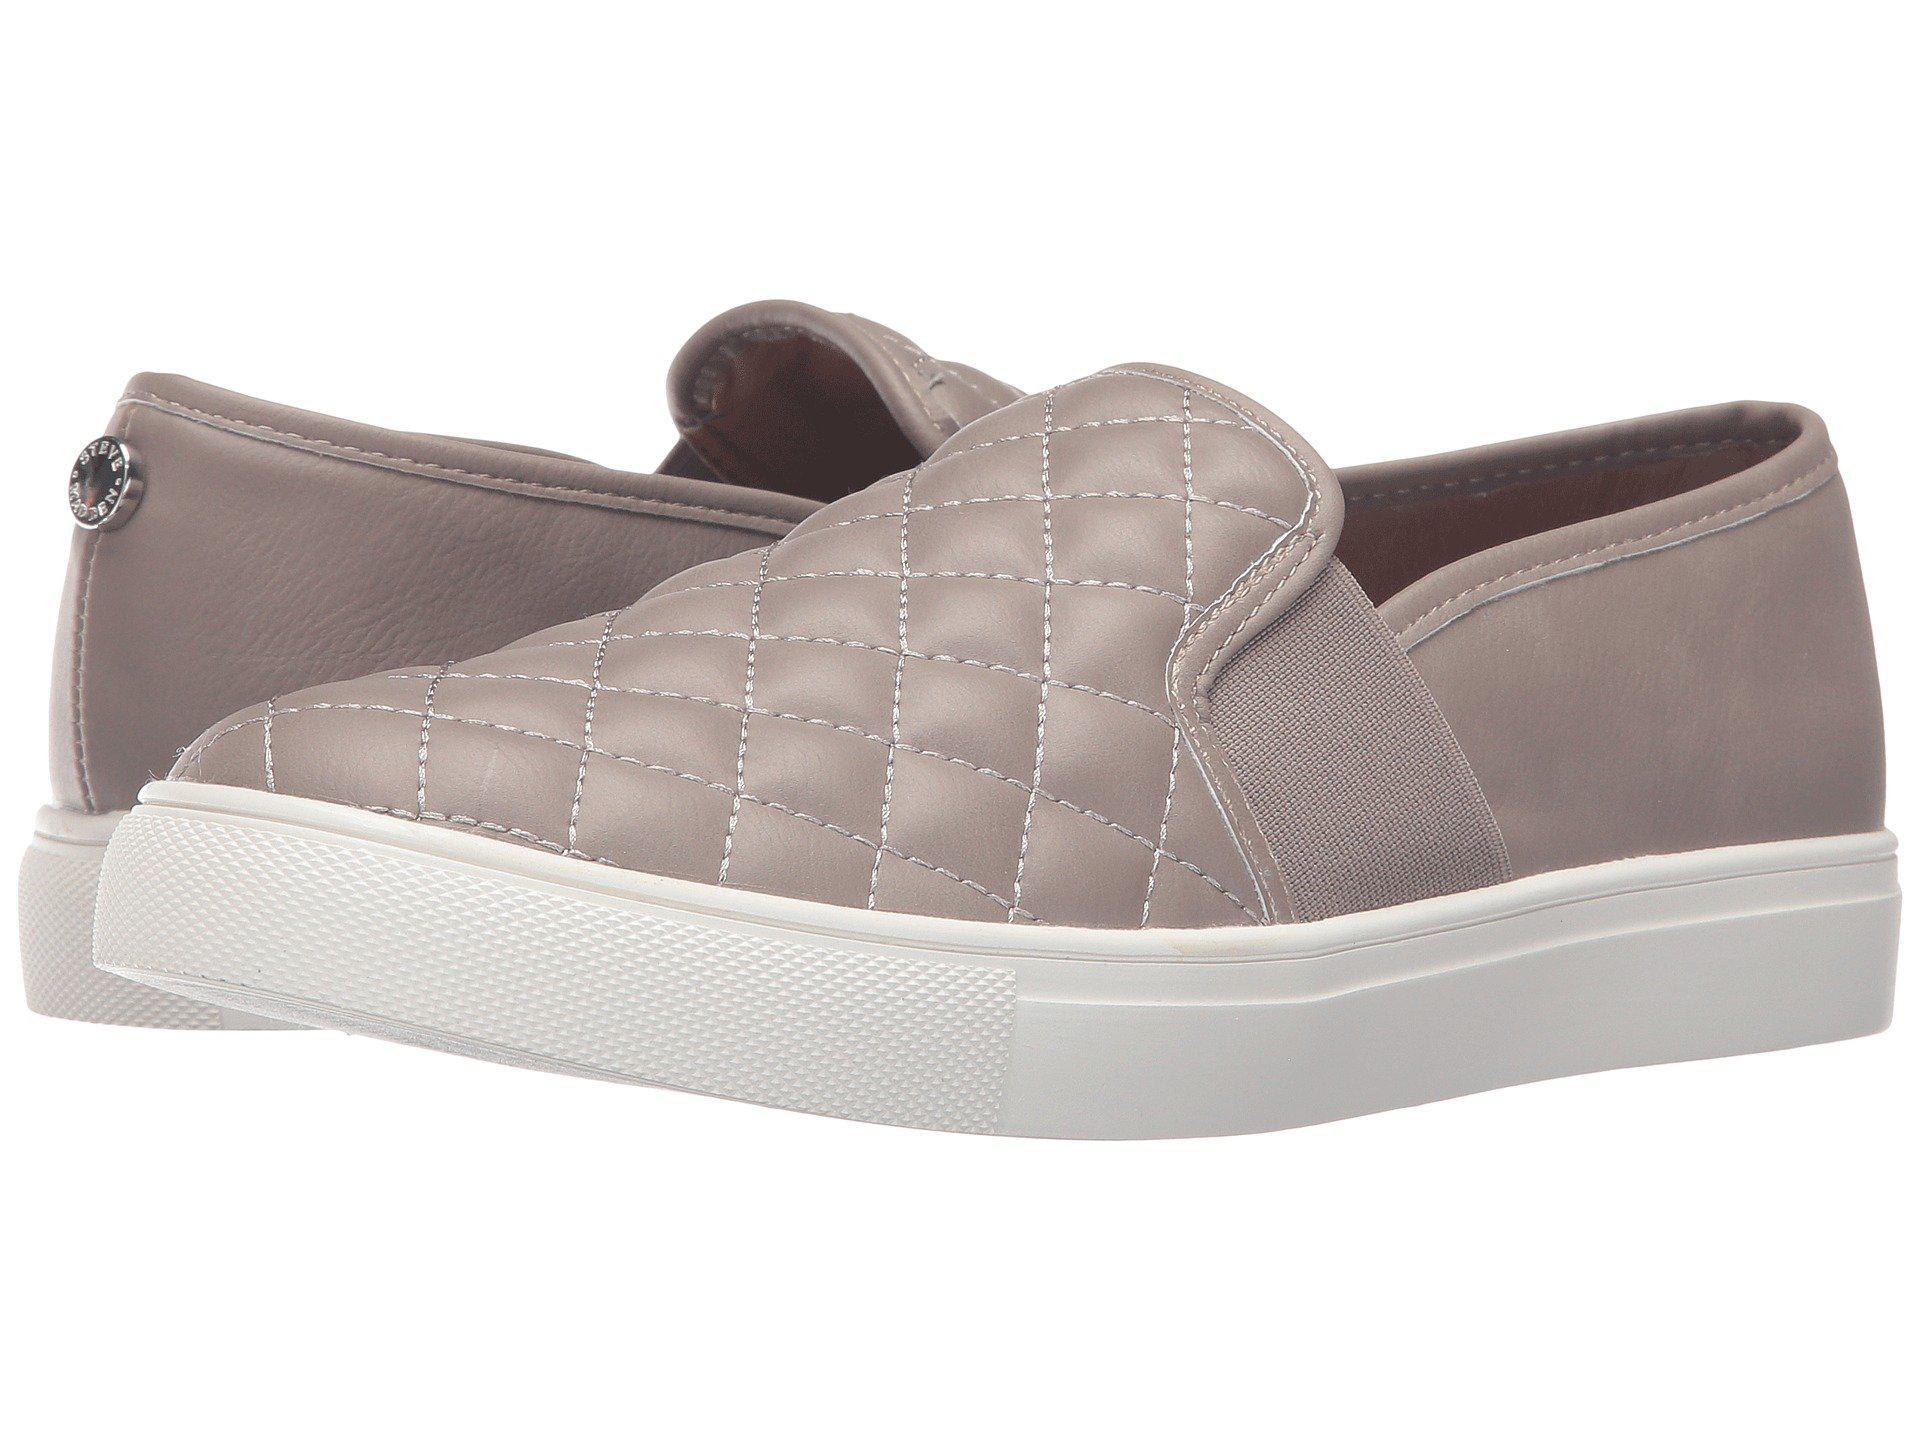 Steve Madden. Men's Gray Ennore